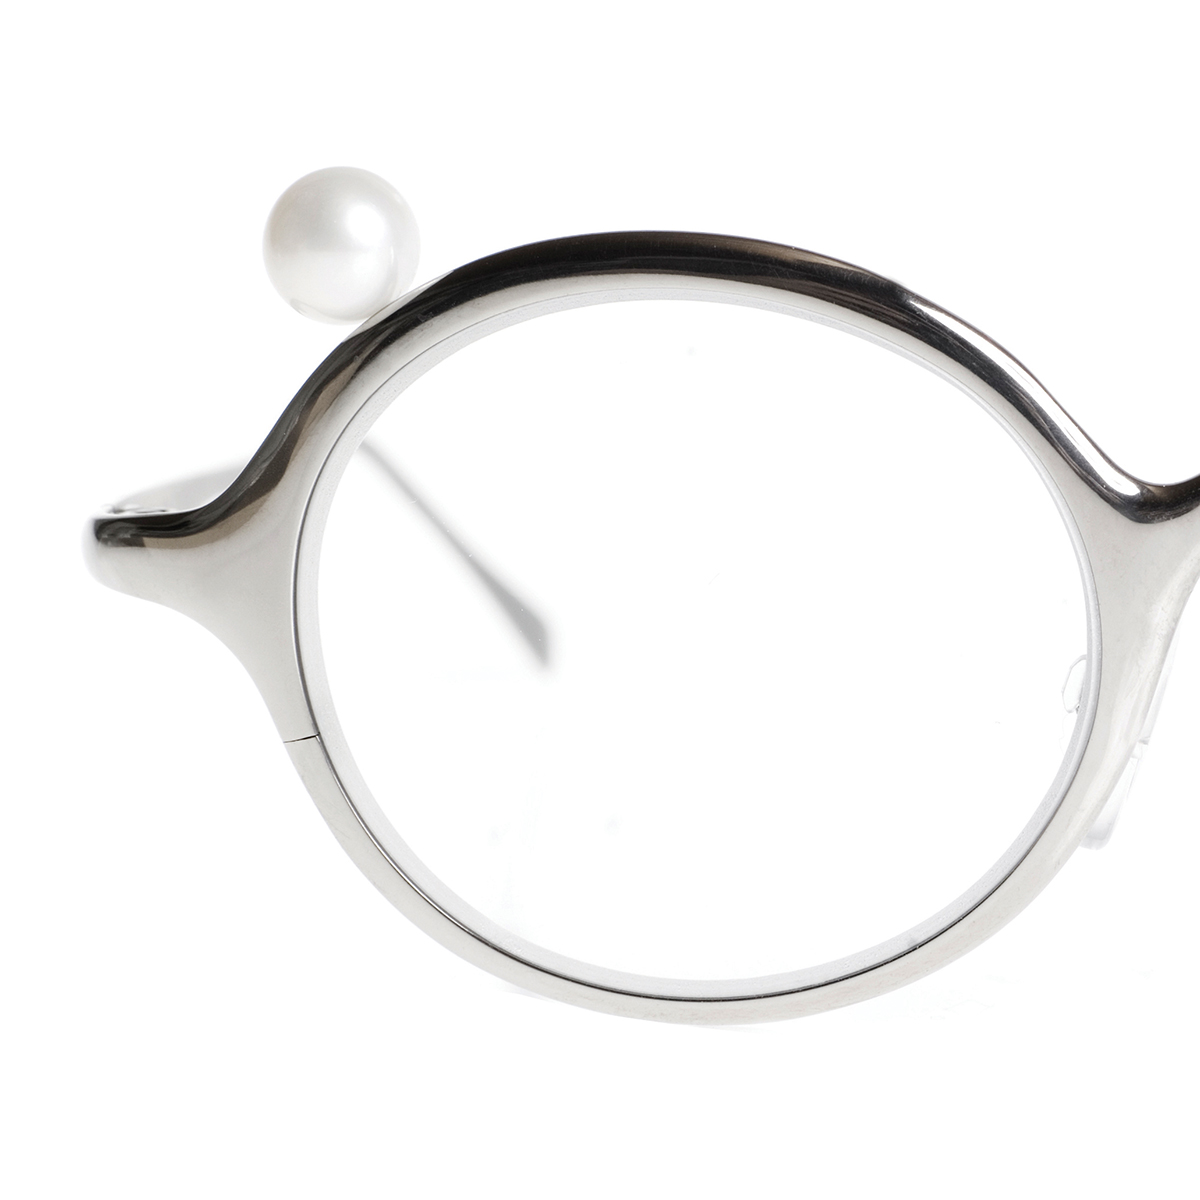 Alice glasses detail